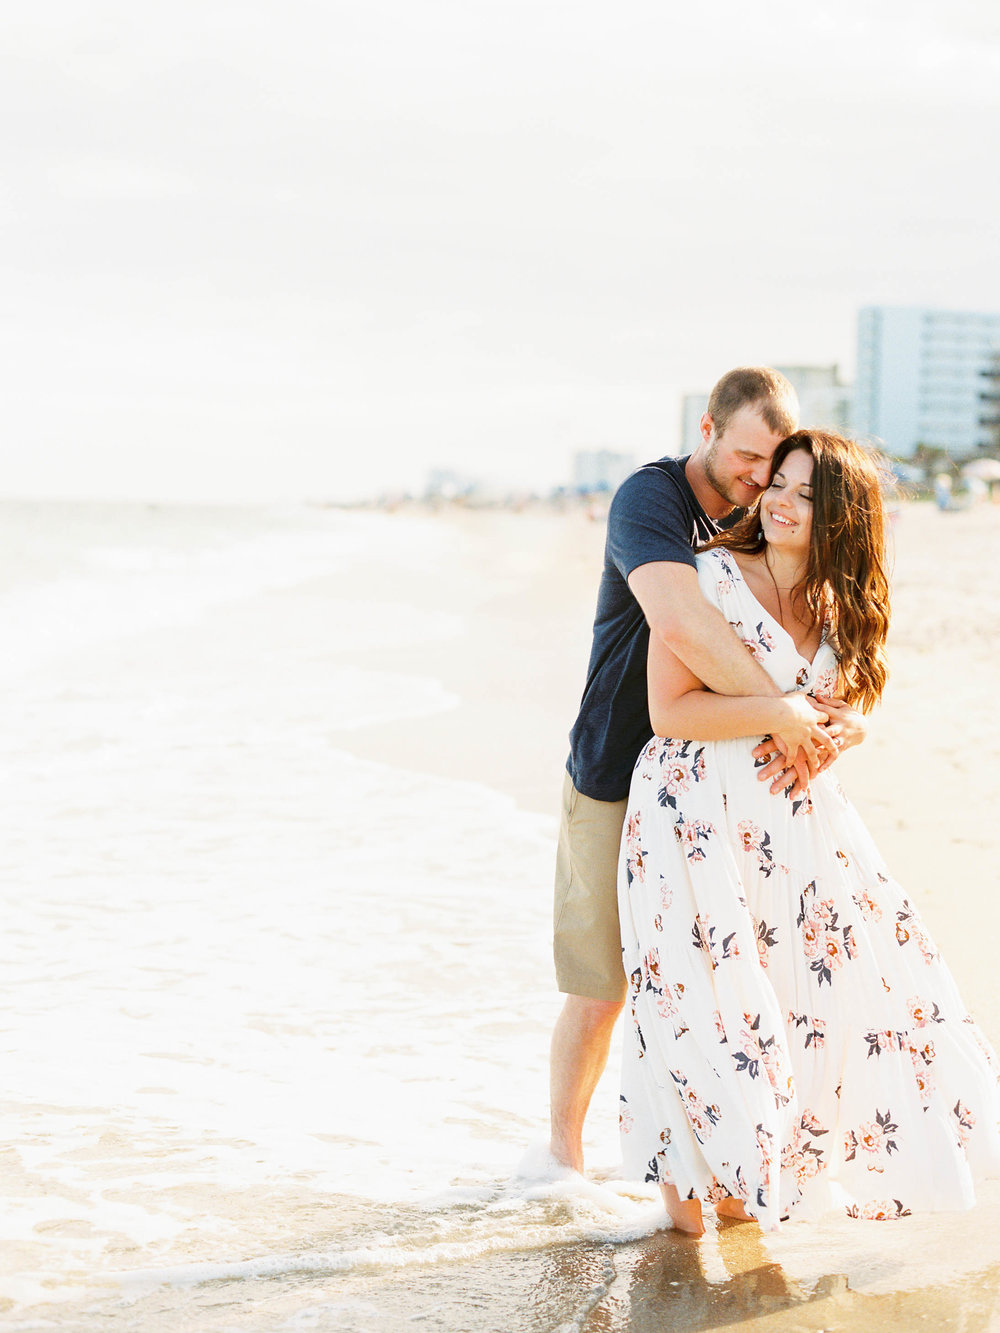 Engagement Sessions - Worldwide